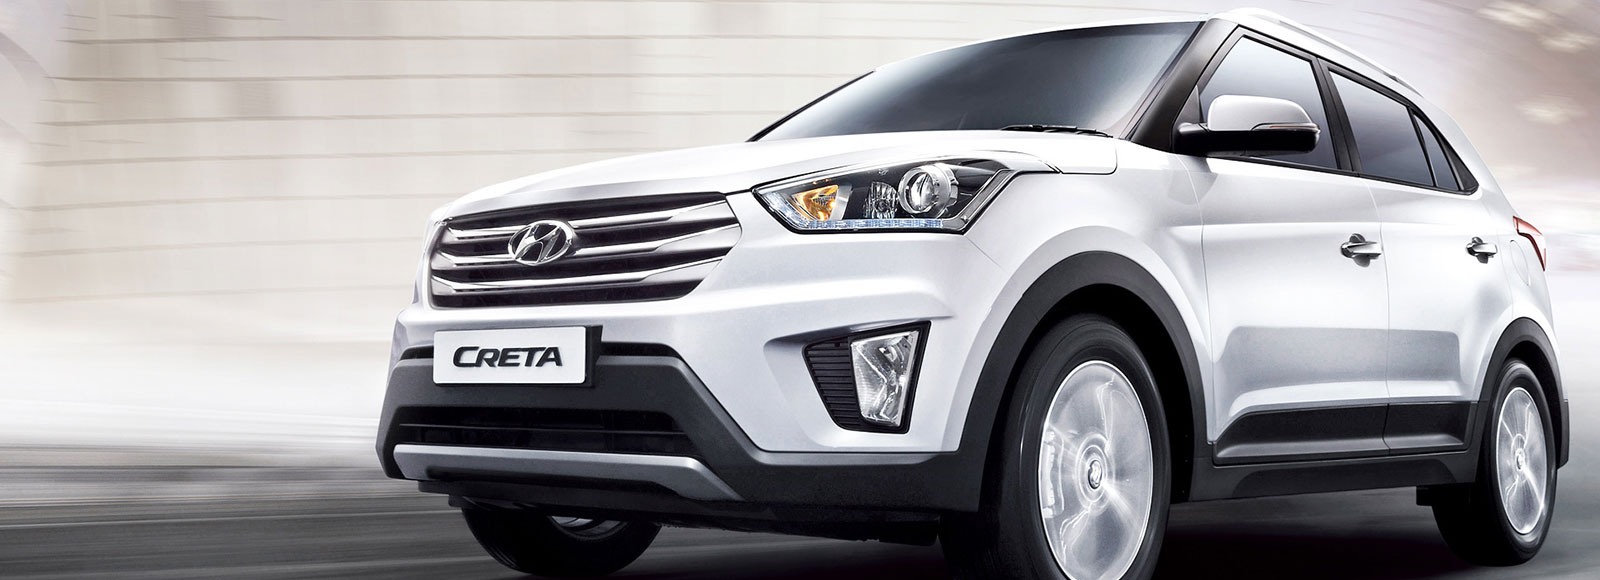 Left side front view of white Creta